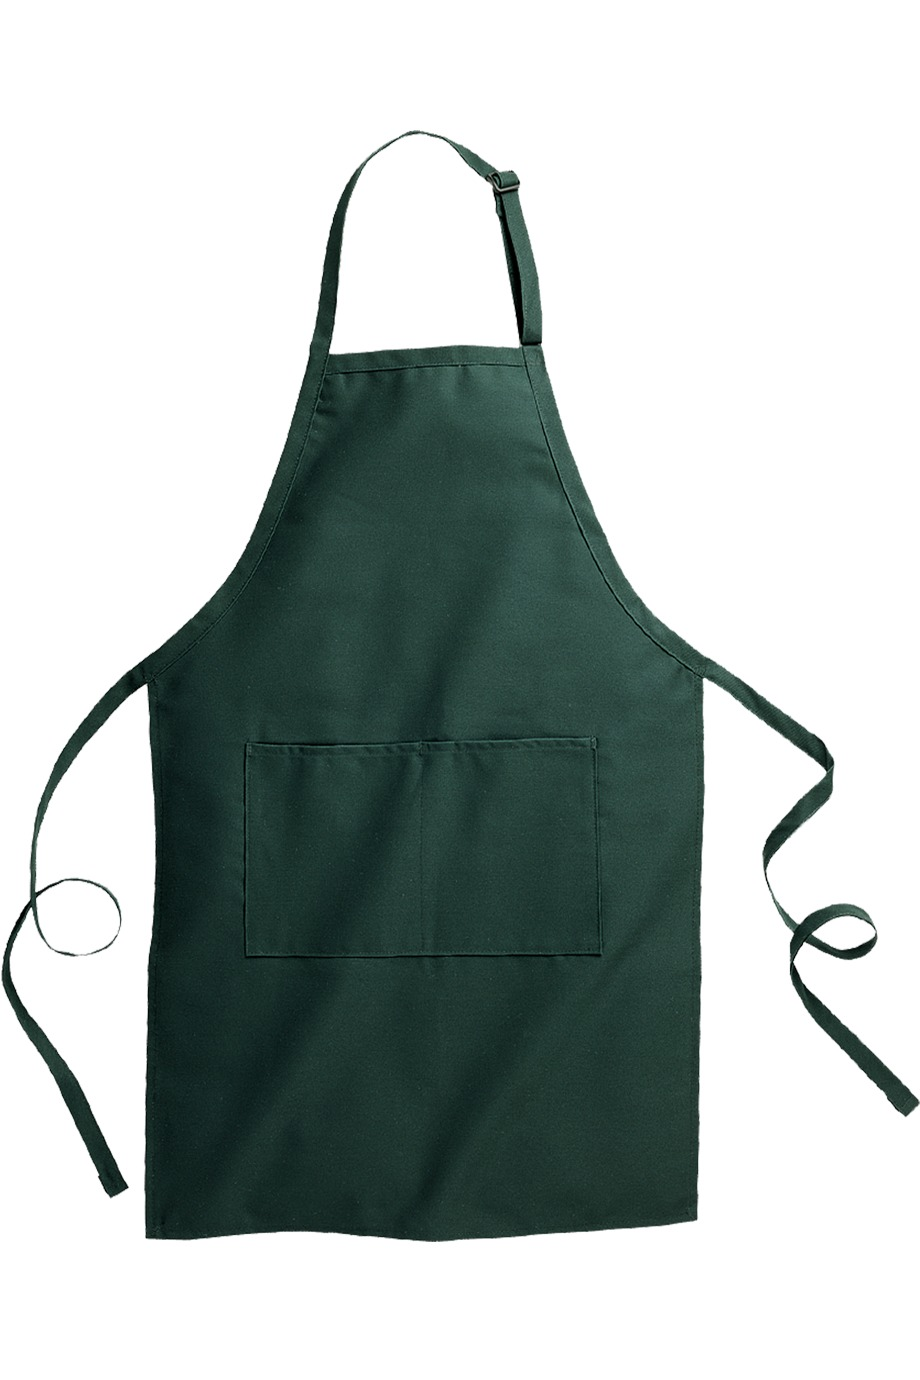 Edwards Garment 9005 - Butcher Apron